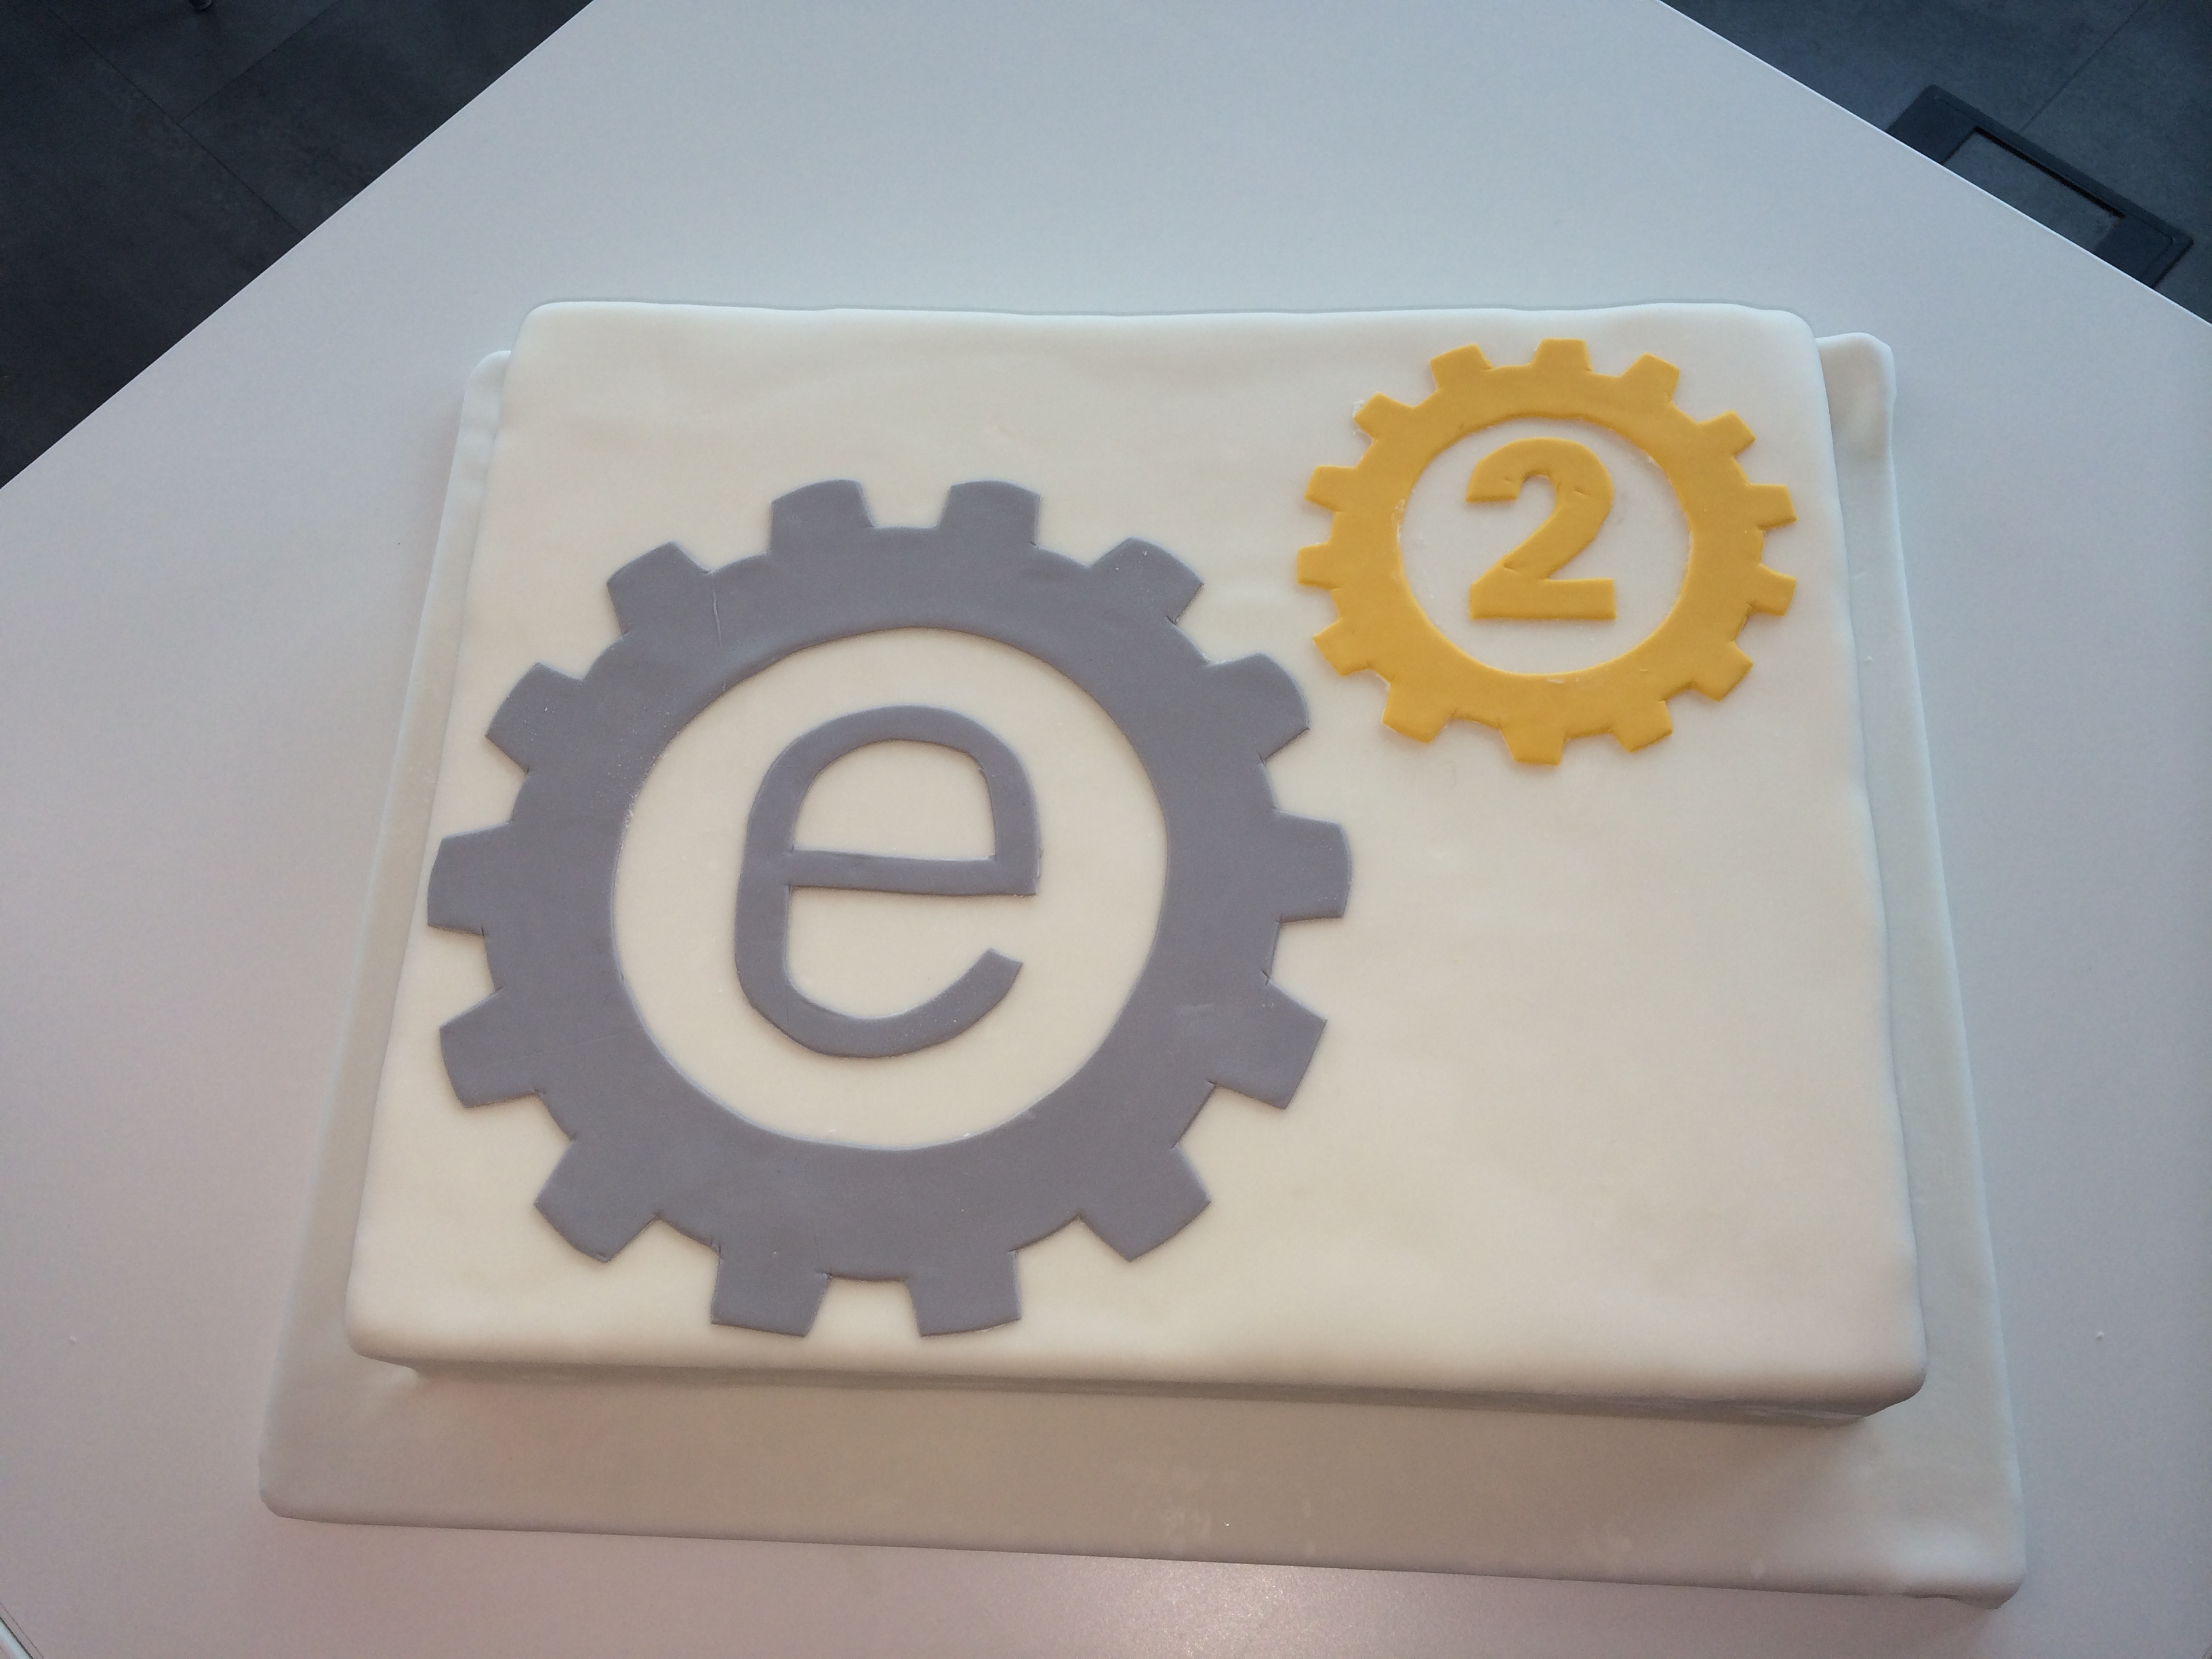 Event Engine 2.0 project release celebration cake